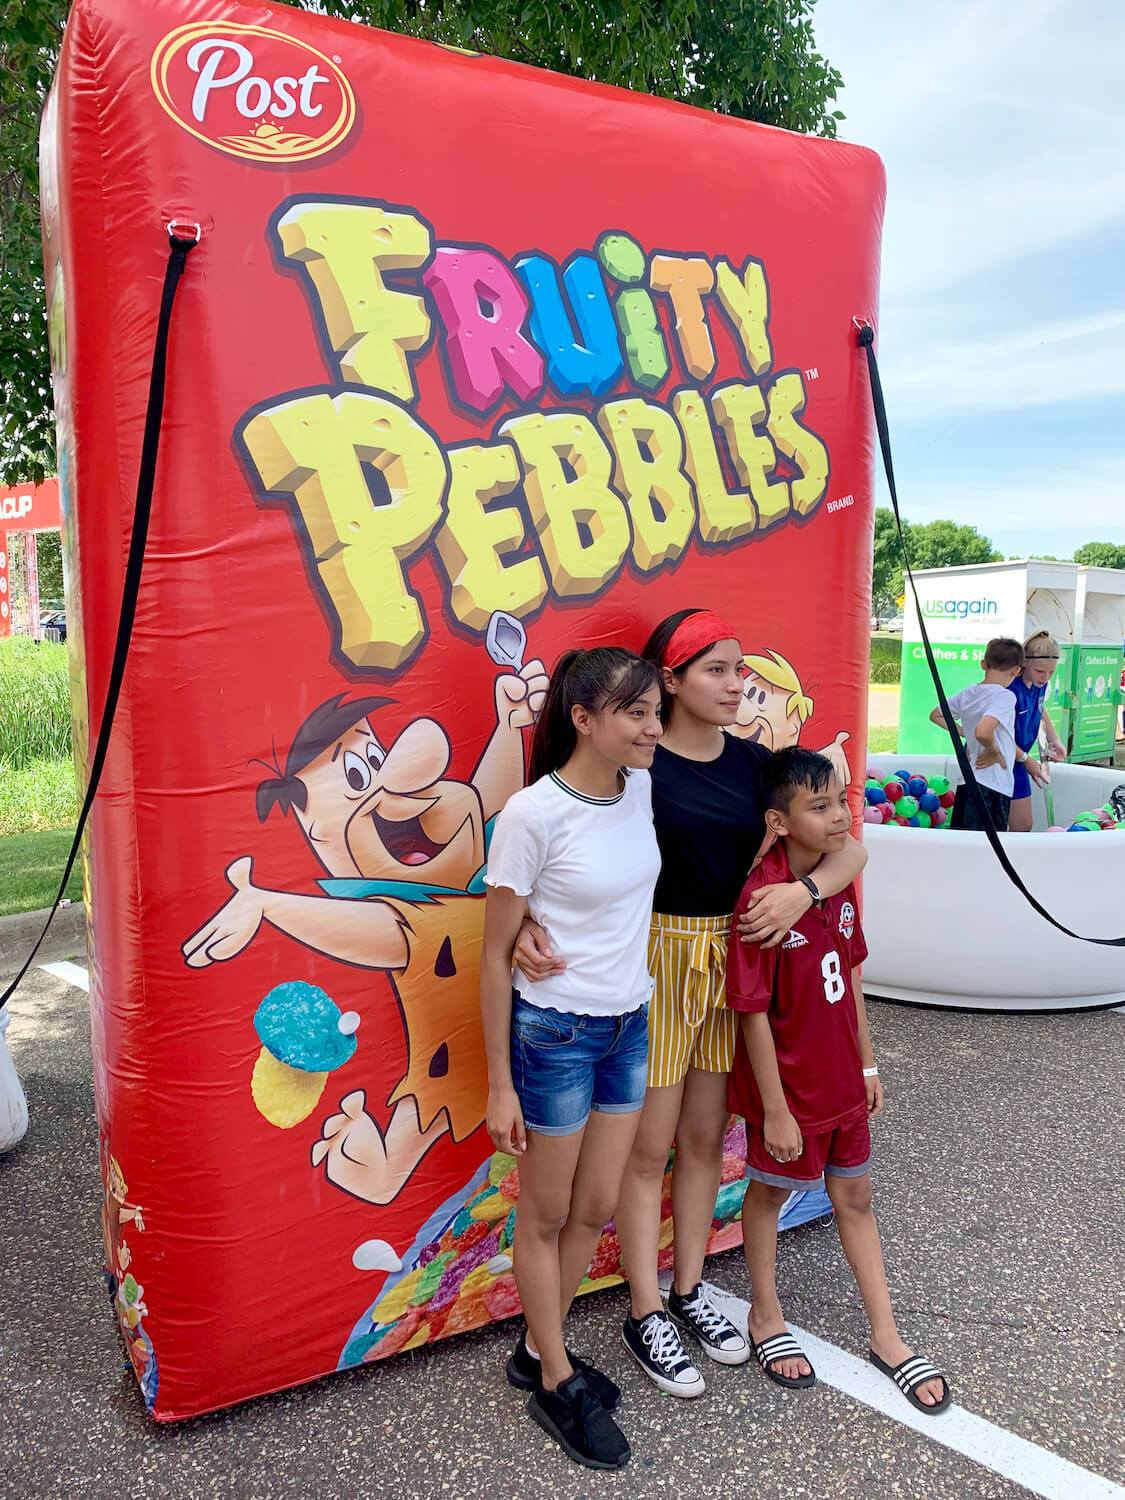 38-post-cereal-fruity-pebbles-inflatable-box.jpg